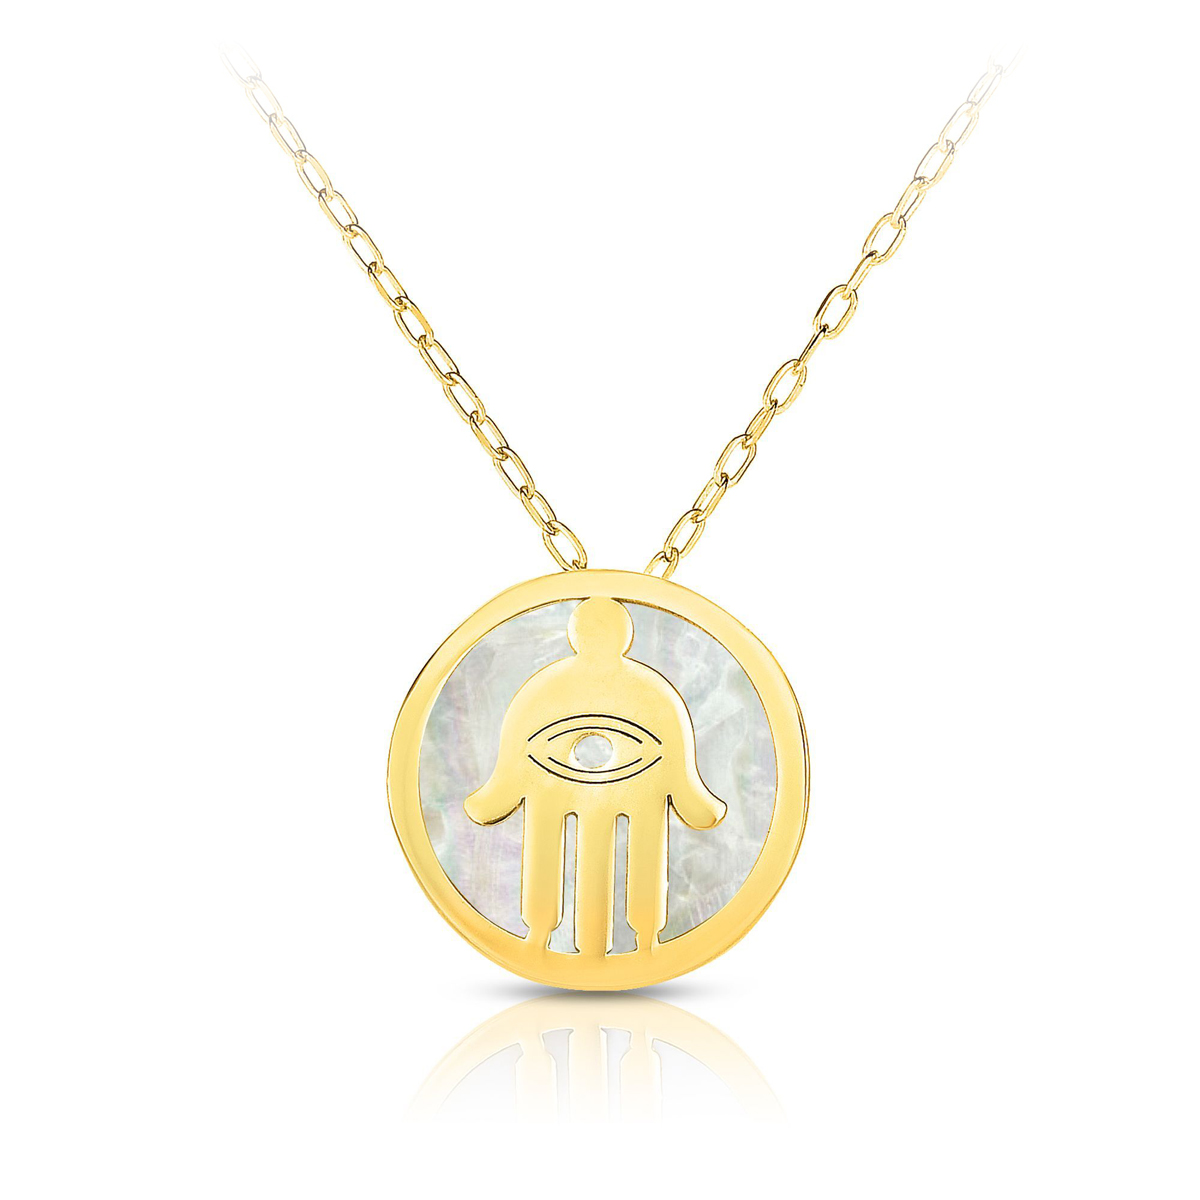 Royal Chain 14 Karat Yellow Gold Mother of Pearl Hamsa Pendant Necklace